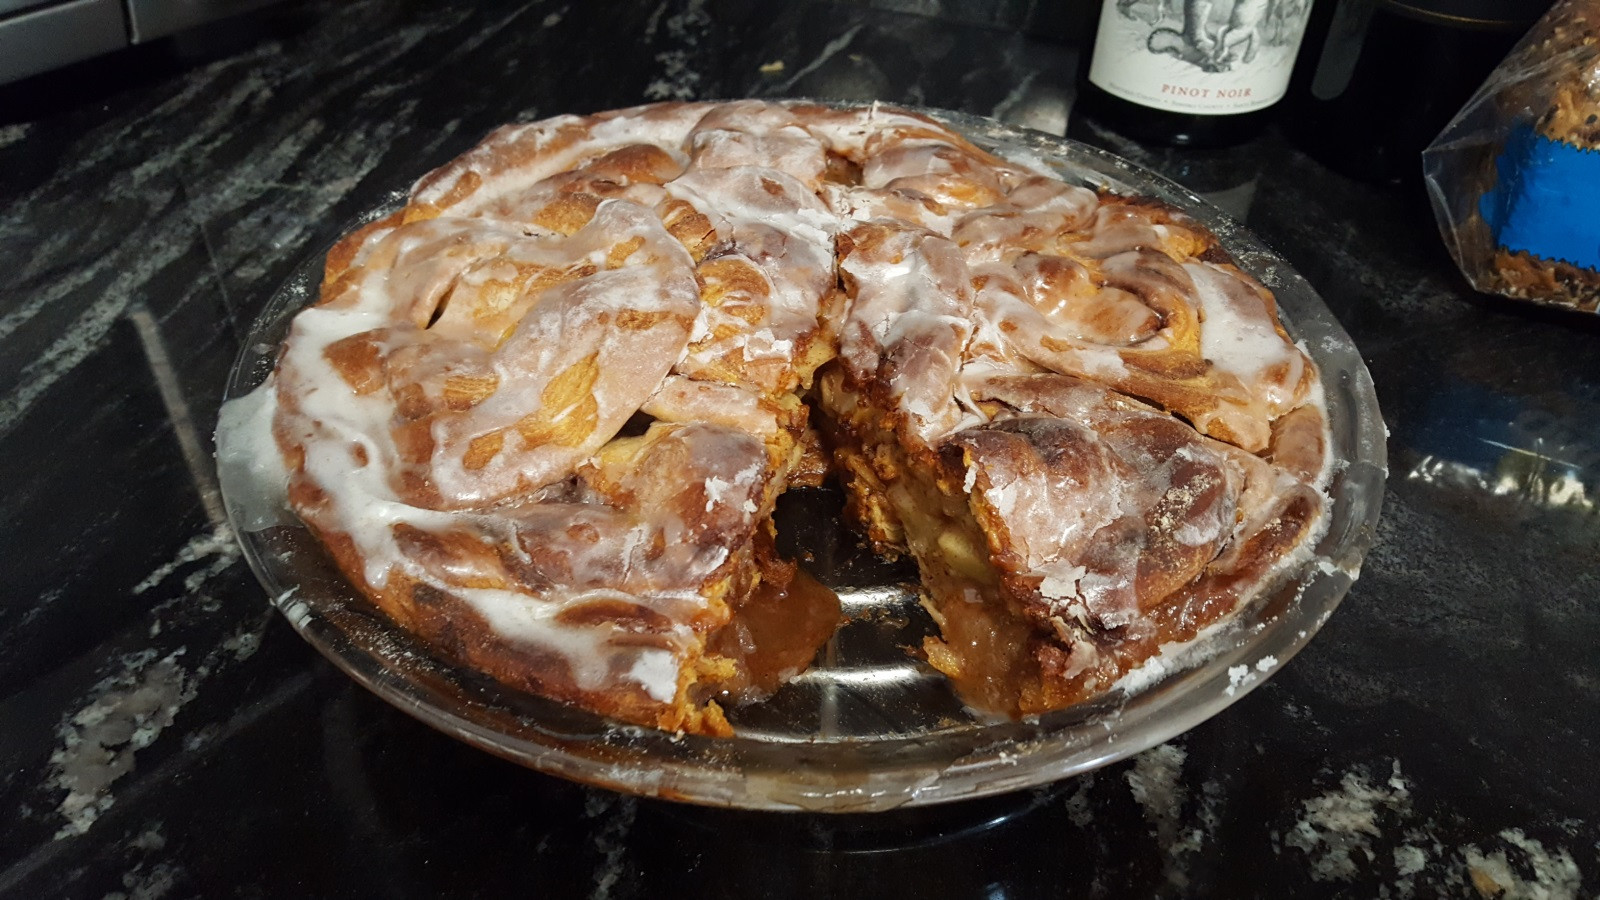 Apple Pie With Cinnamon Roll Crust  Breakfast at IHOP Mail lists Potluck supper Dave